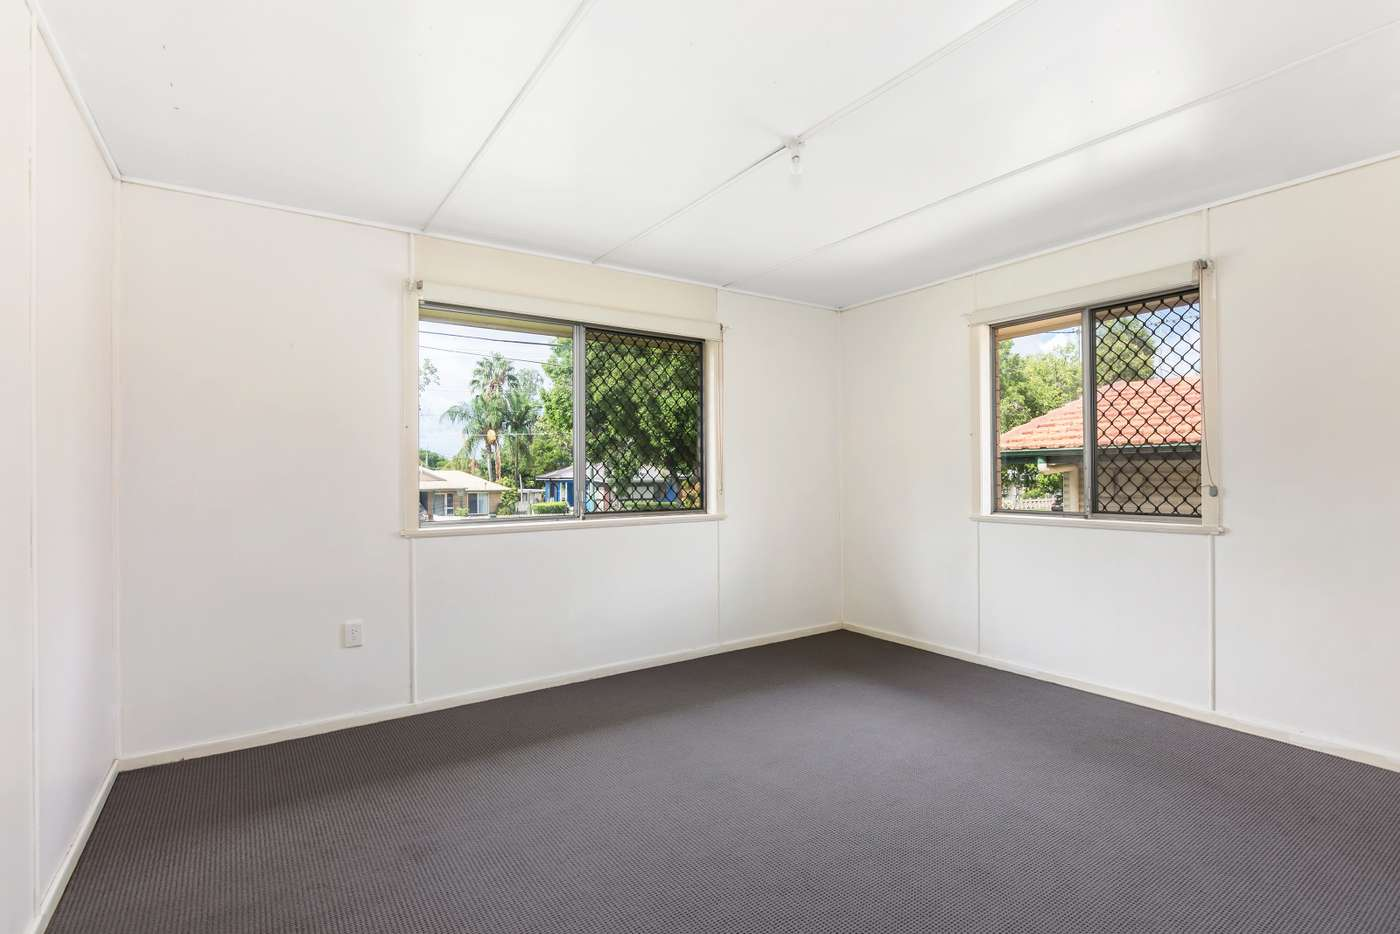 Sixth view of Homely house listing, 60 Toongarra Road, Leichhardt QLD 4305